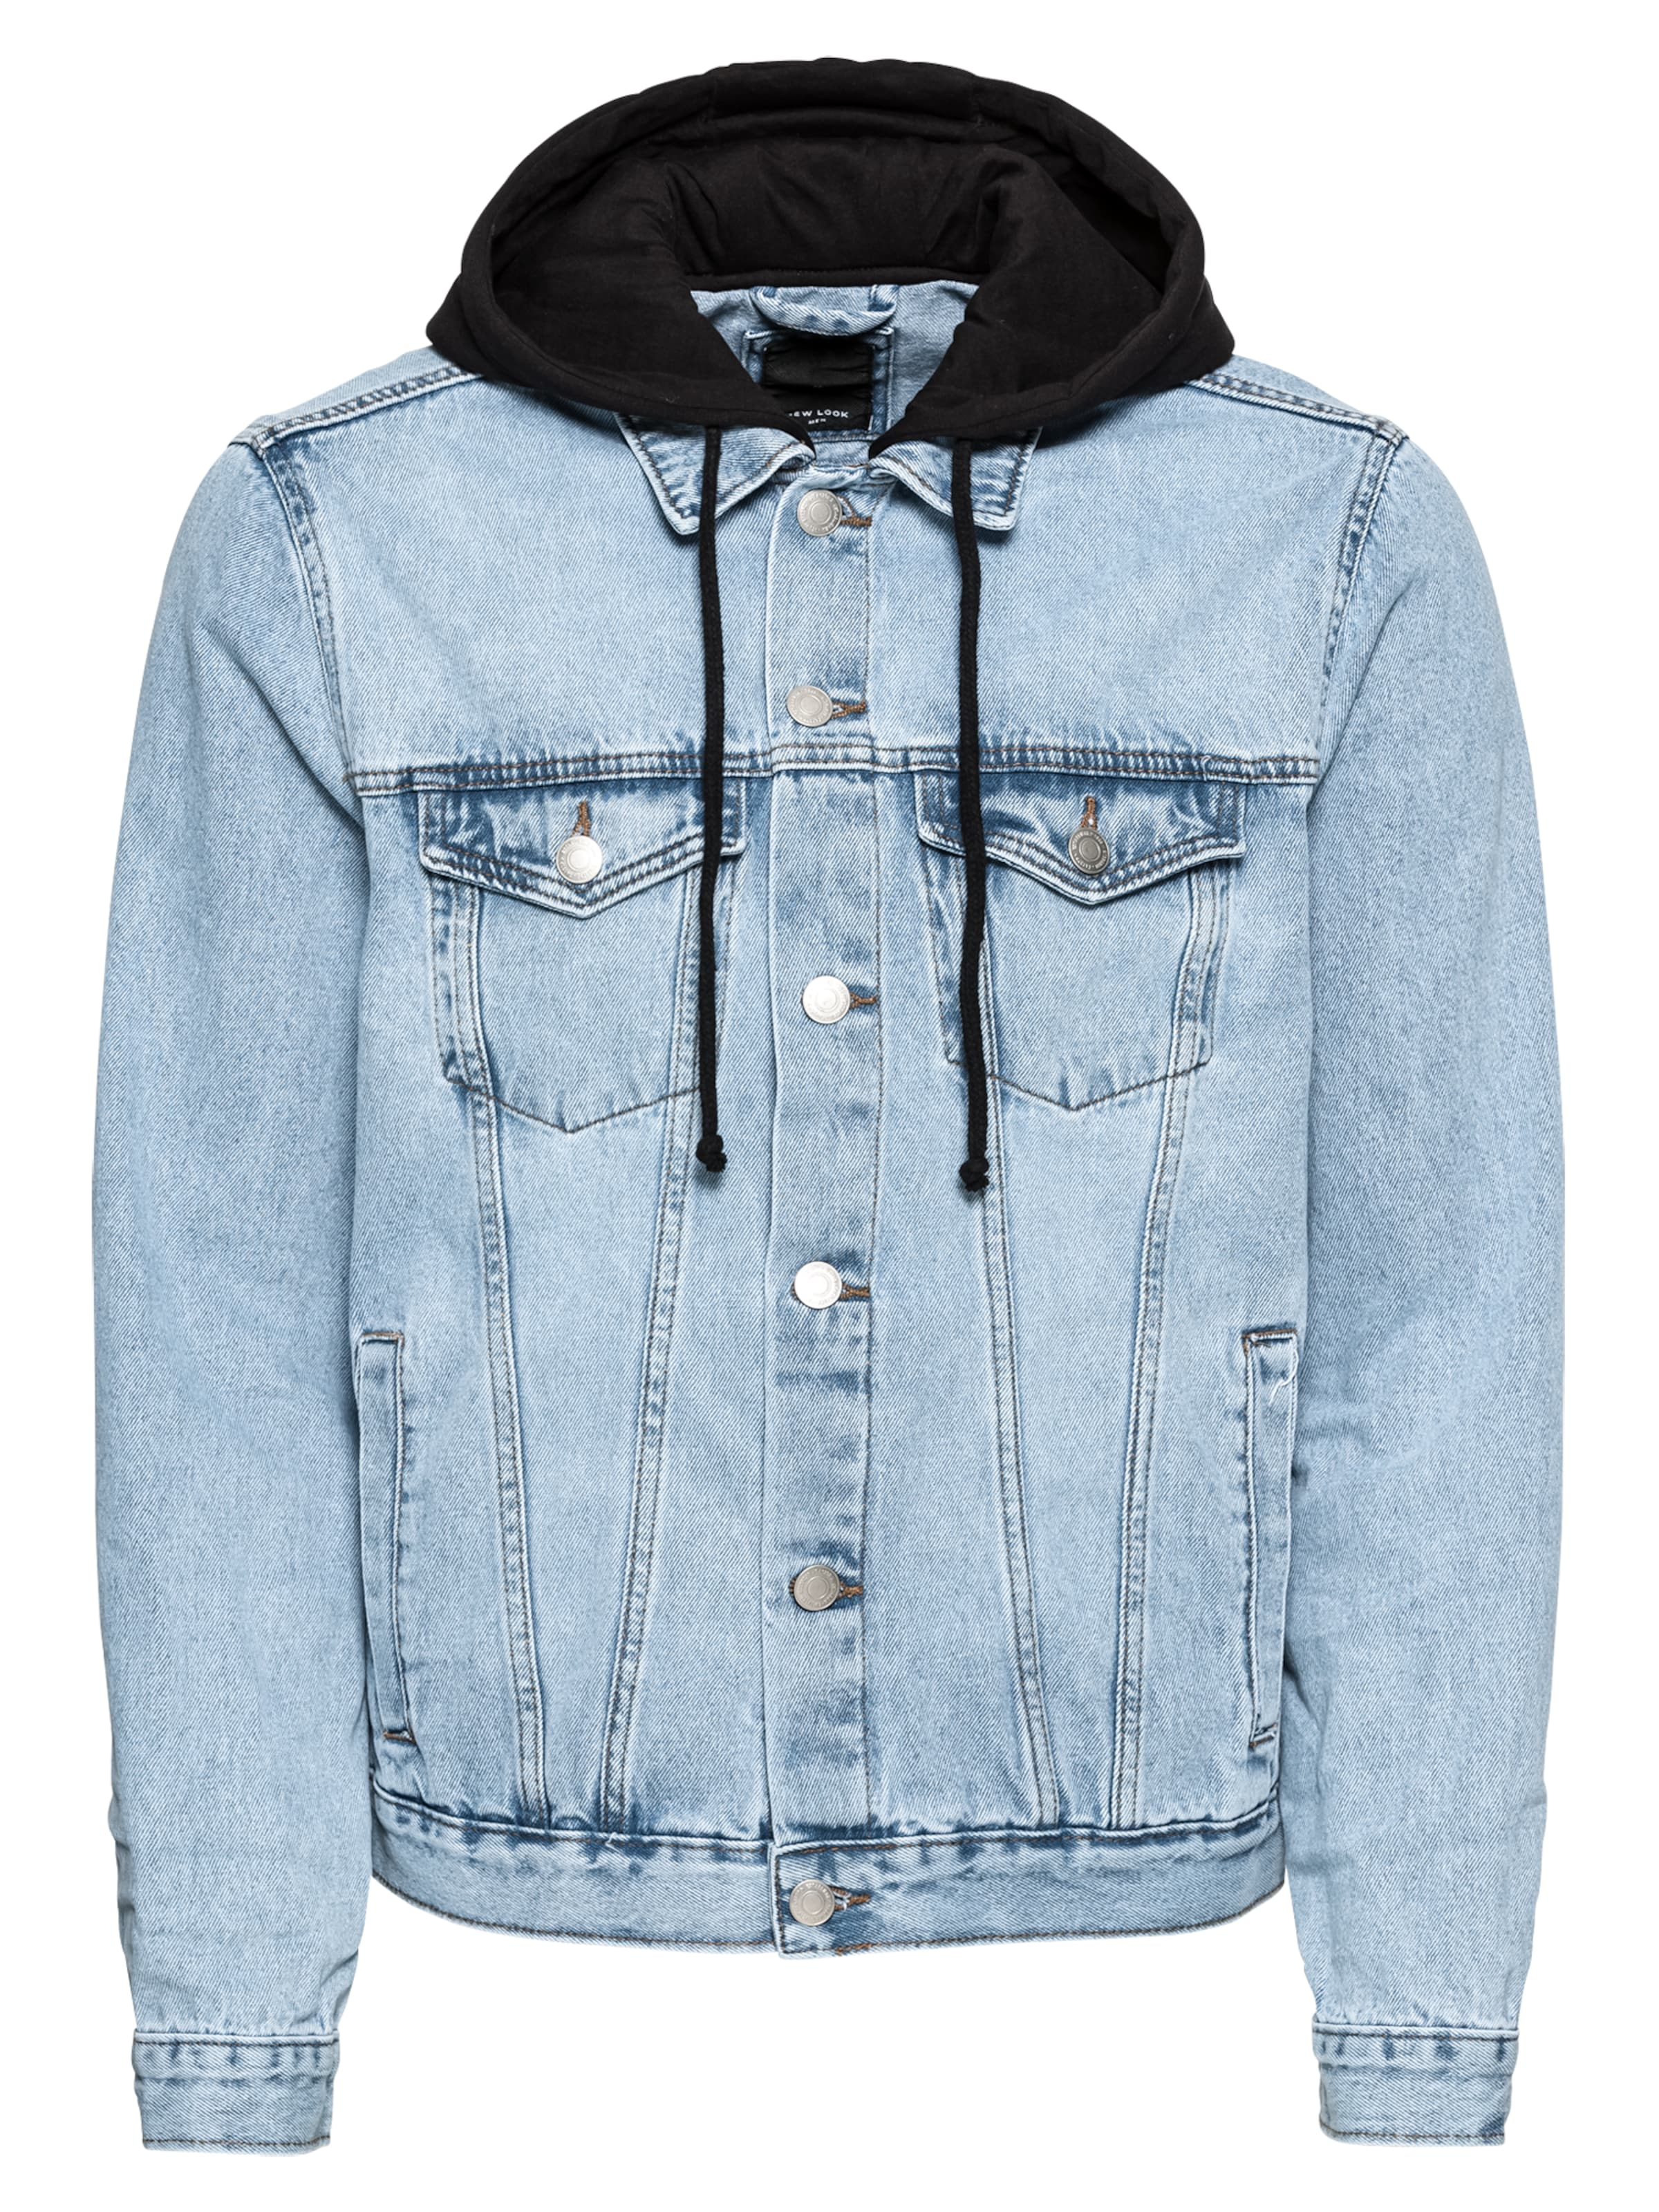 Outlet New Look Tussenjas Rp Trans 02 02 2018 Denim Jacket With